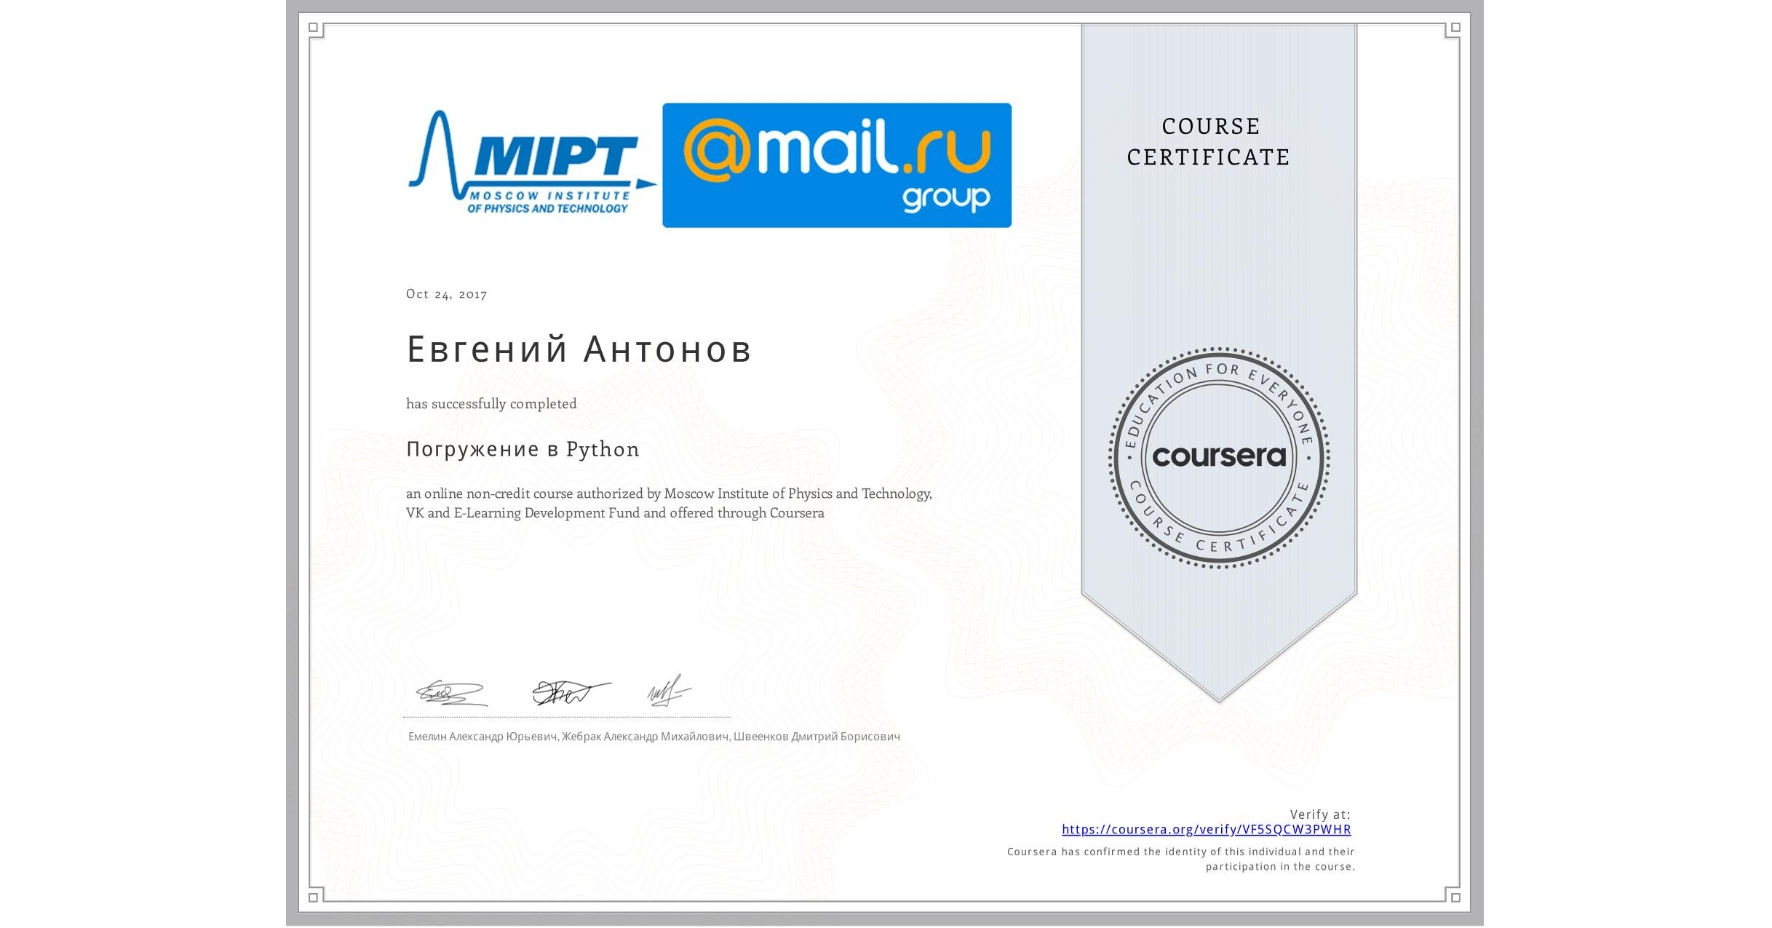 View certificate for Евгений Антонов, Погружение в Python, an online non-credit course authorized by Moscow Institute of Physics and Technology, Mail.Ru Group & ФРОО and offered through Coursera